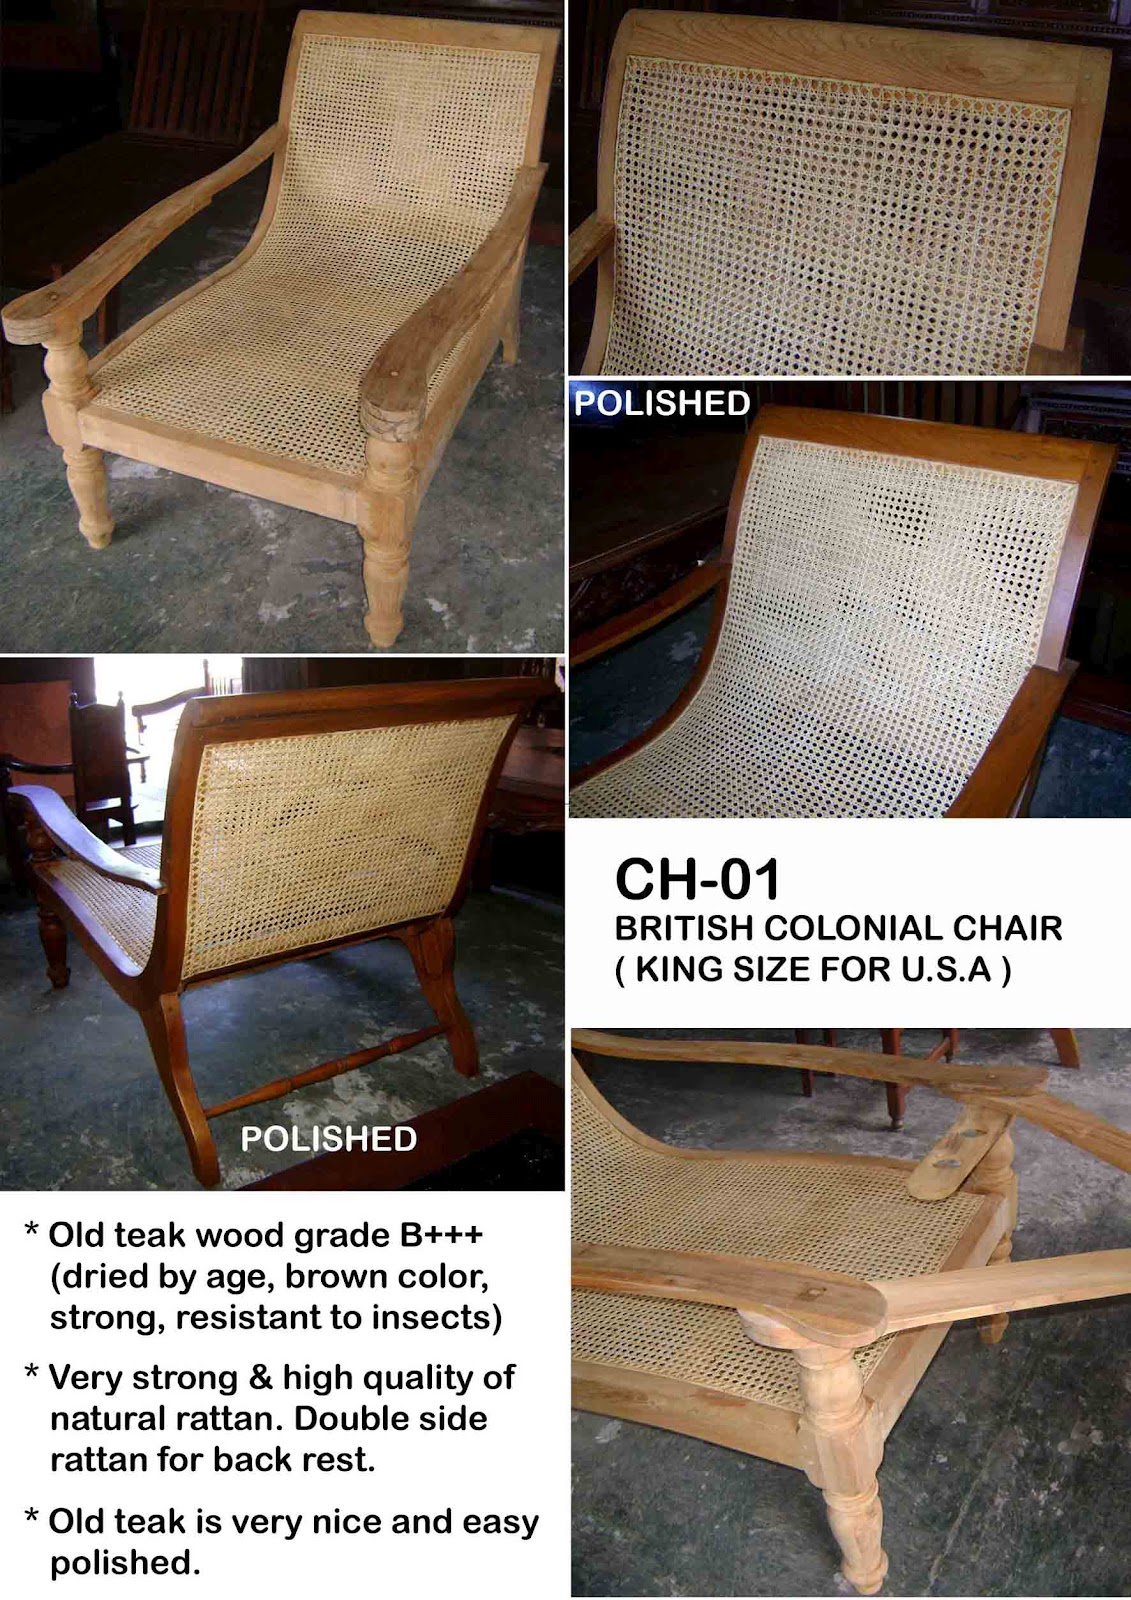 british colonial chair faux leather recliner serat selaras international king size ch 01k